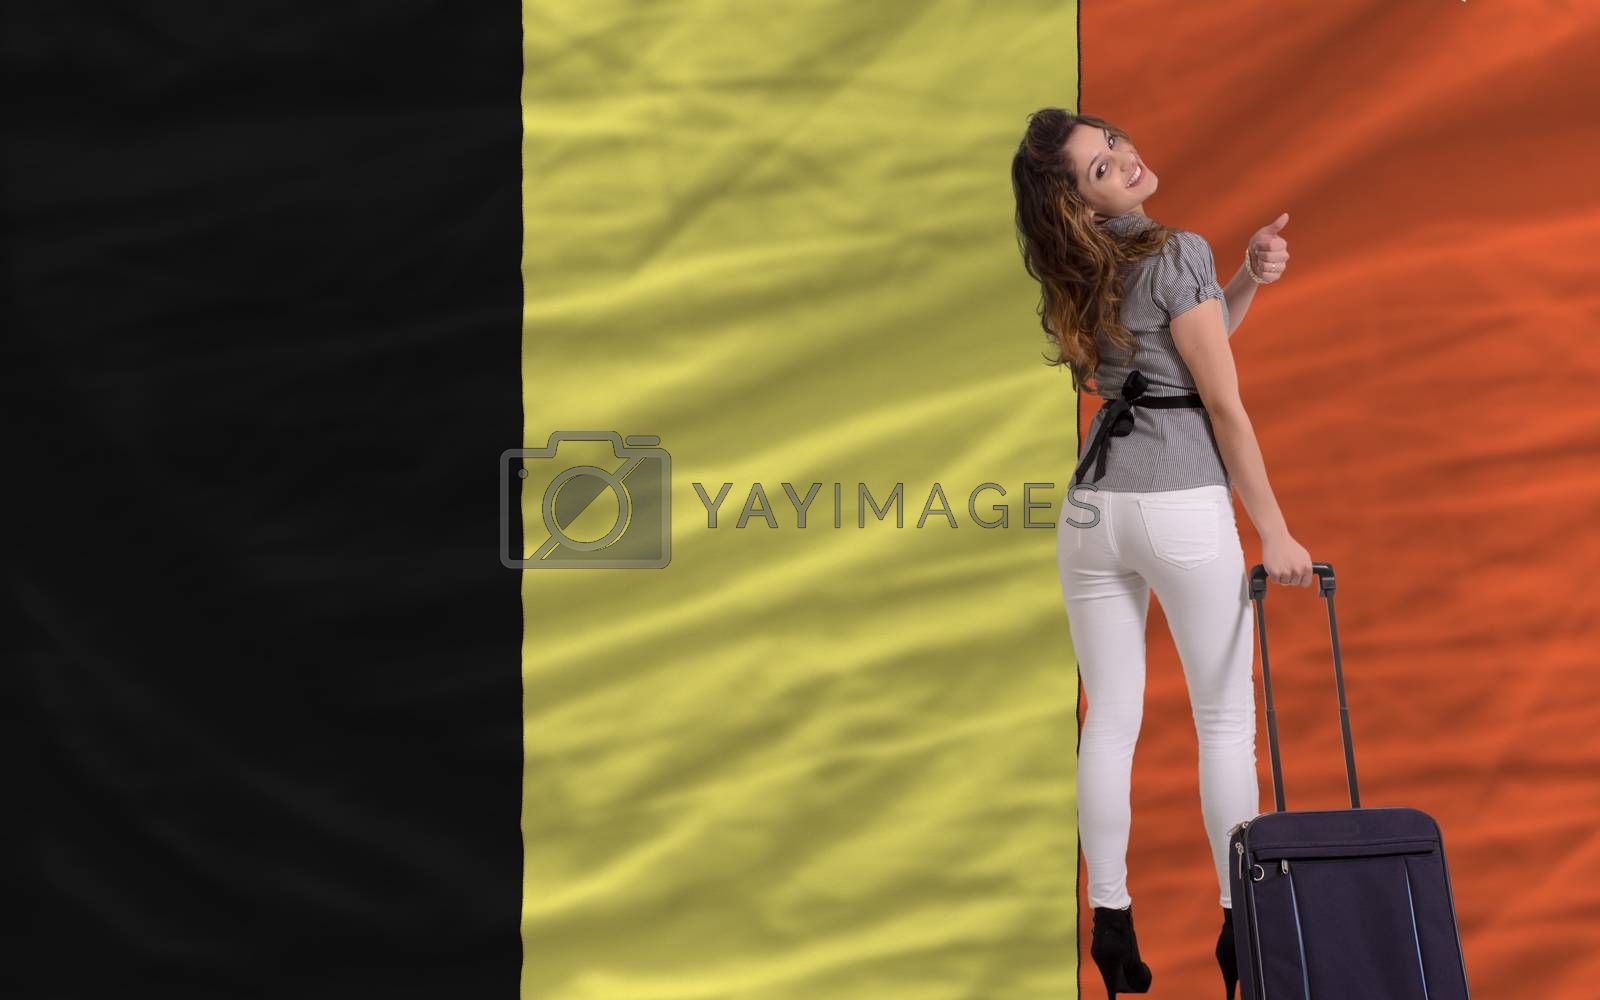 Royalty free image of tourist travel to belgium by vepar5